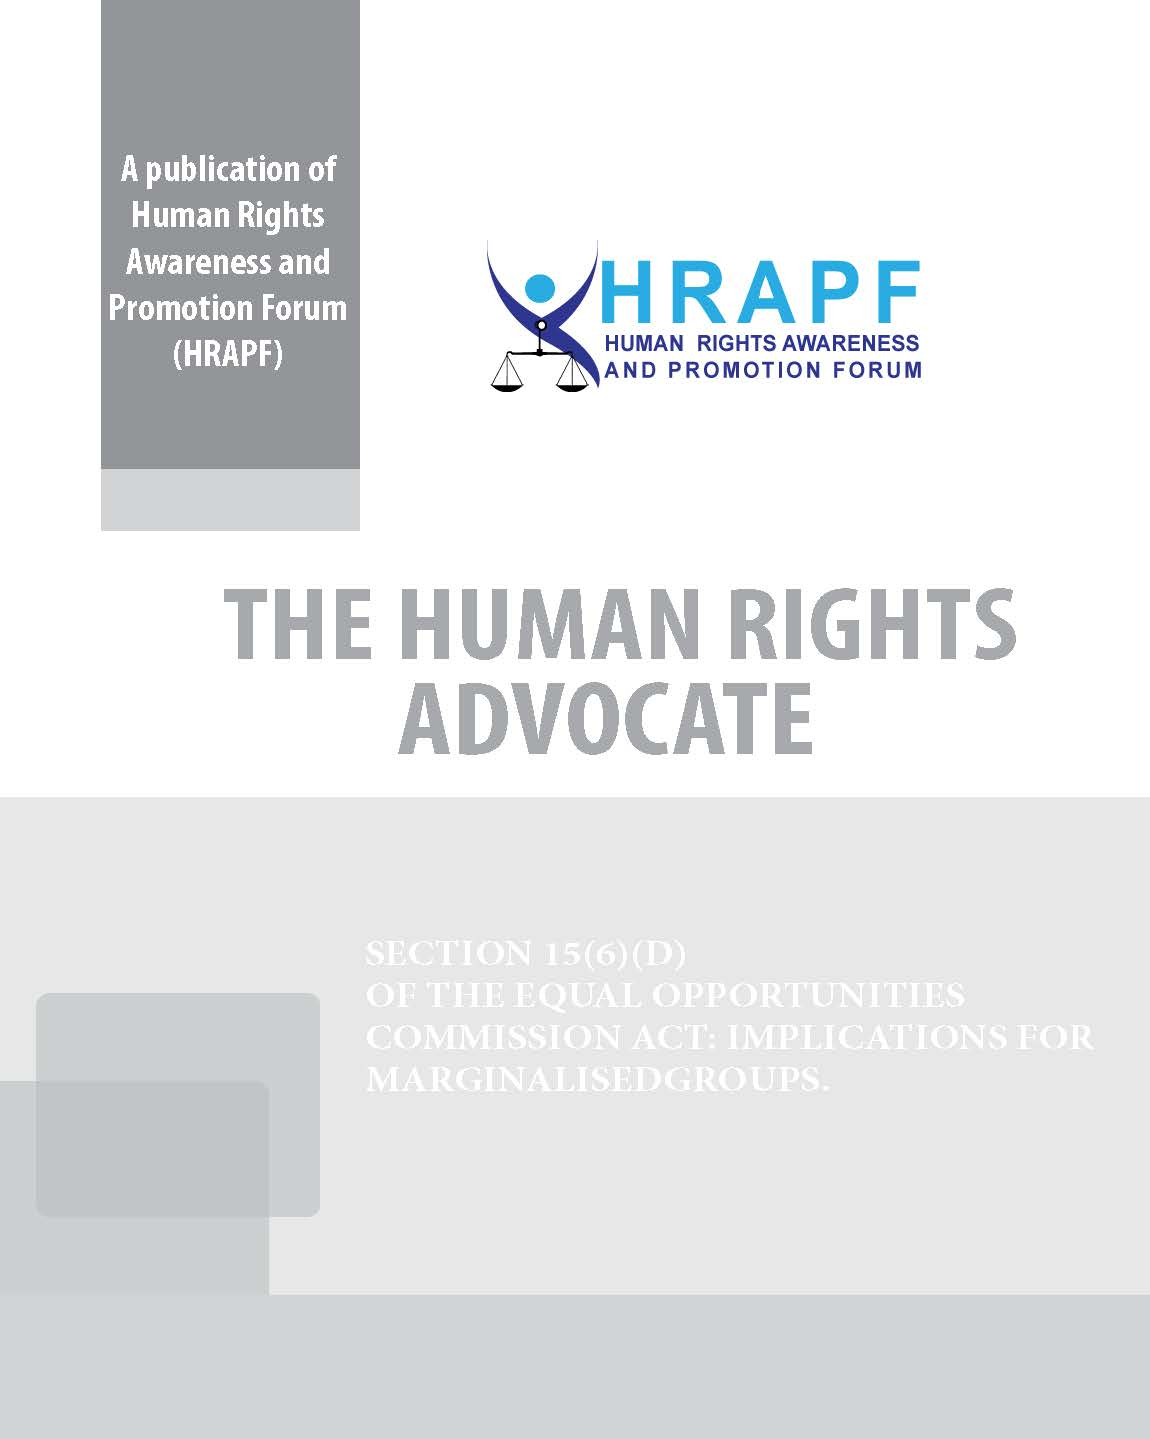 FIRST ISSUE OF THE HUMAN RIGHTS ADVOCATE